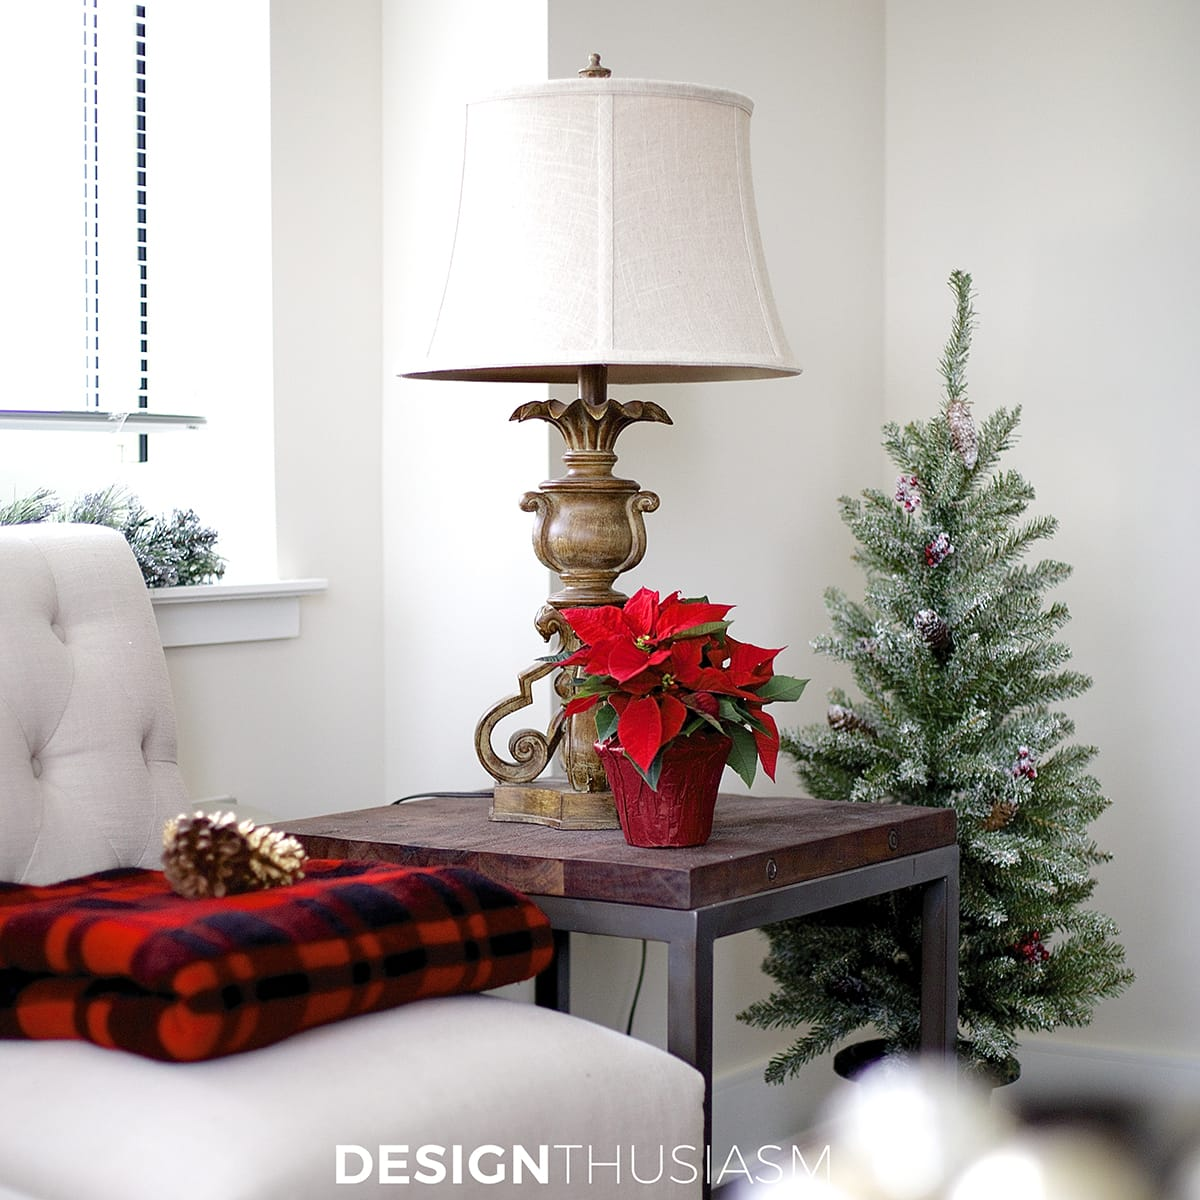 Holiday Decorating Ideas Part - 16: 12 Easy Holiday Decorating Ideas For A Small Apartment